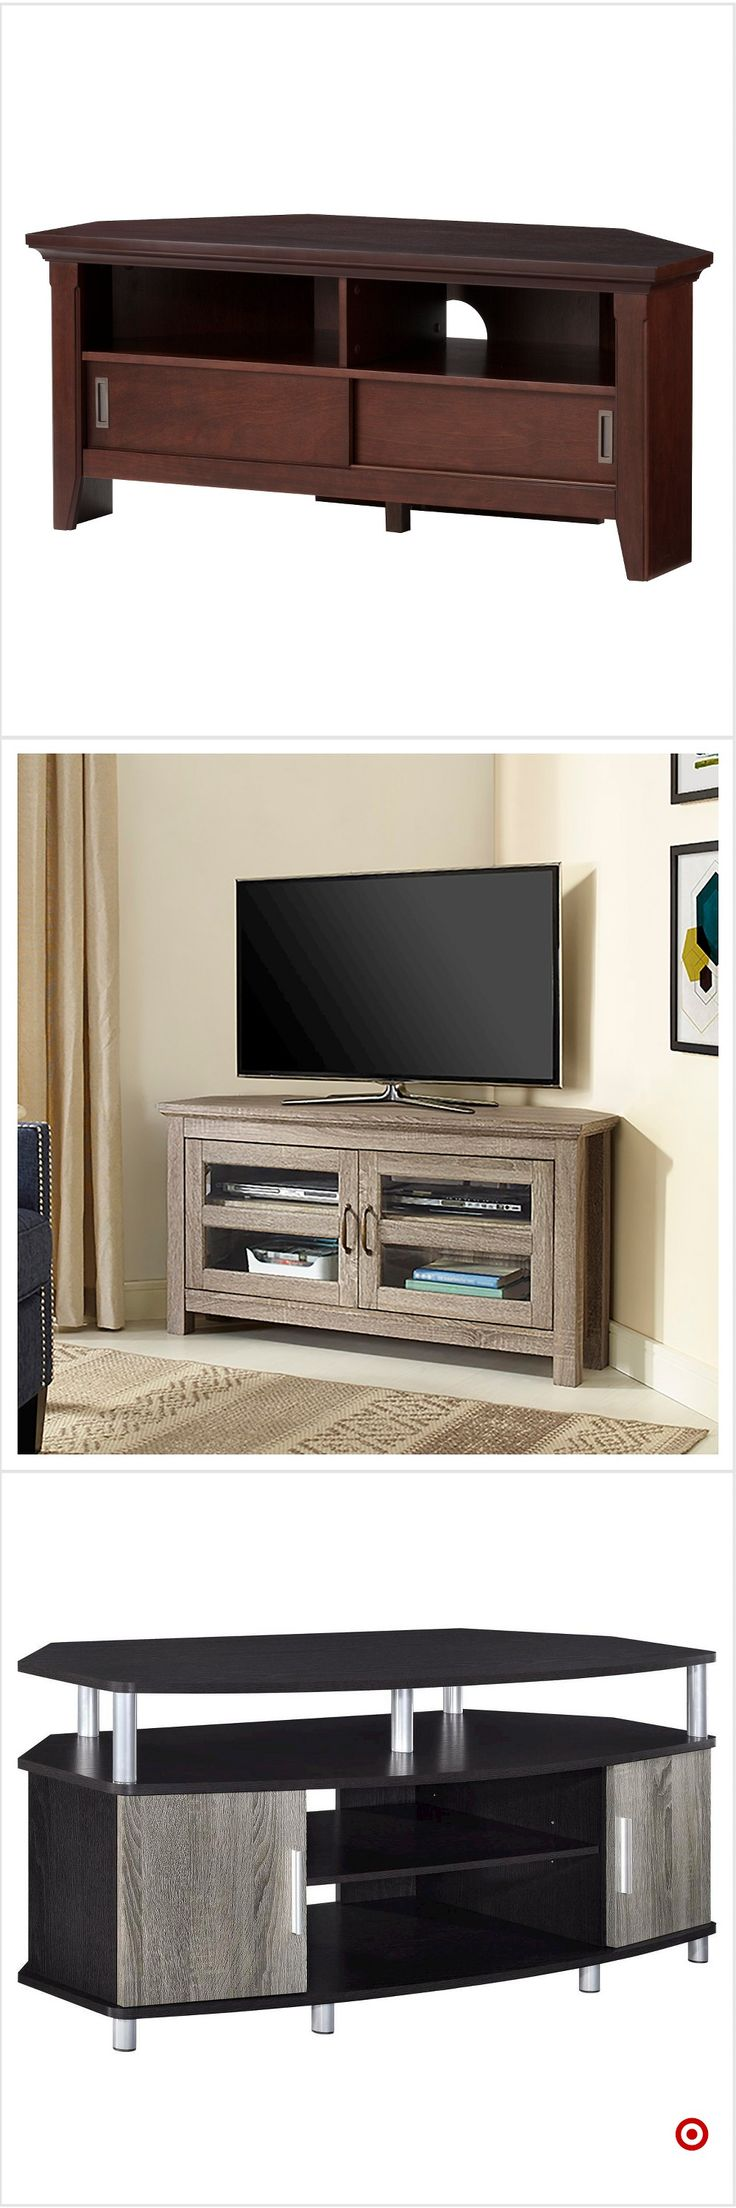 Tv television stands austin s furniture - Shop Target For Corner Tv Stand You Will Love At Great Low Prices Free Shipping